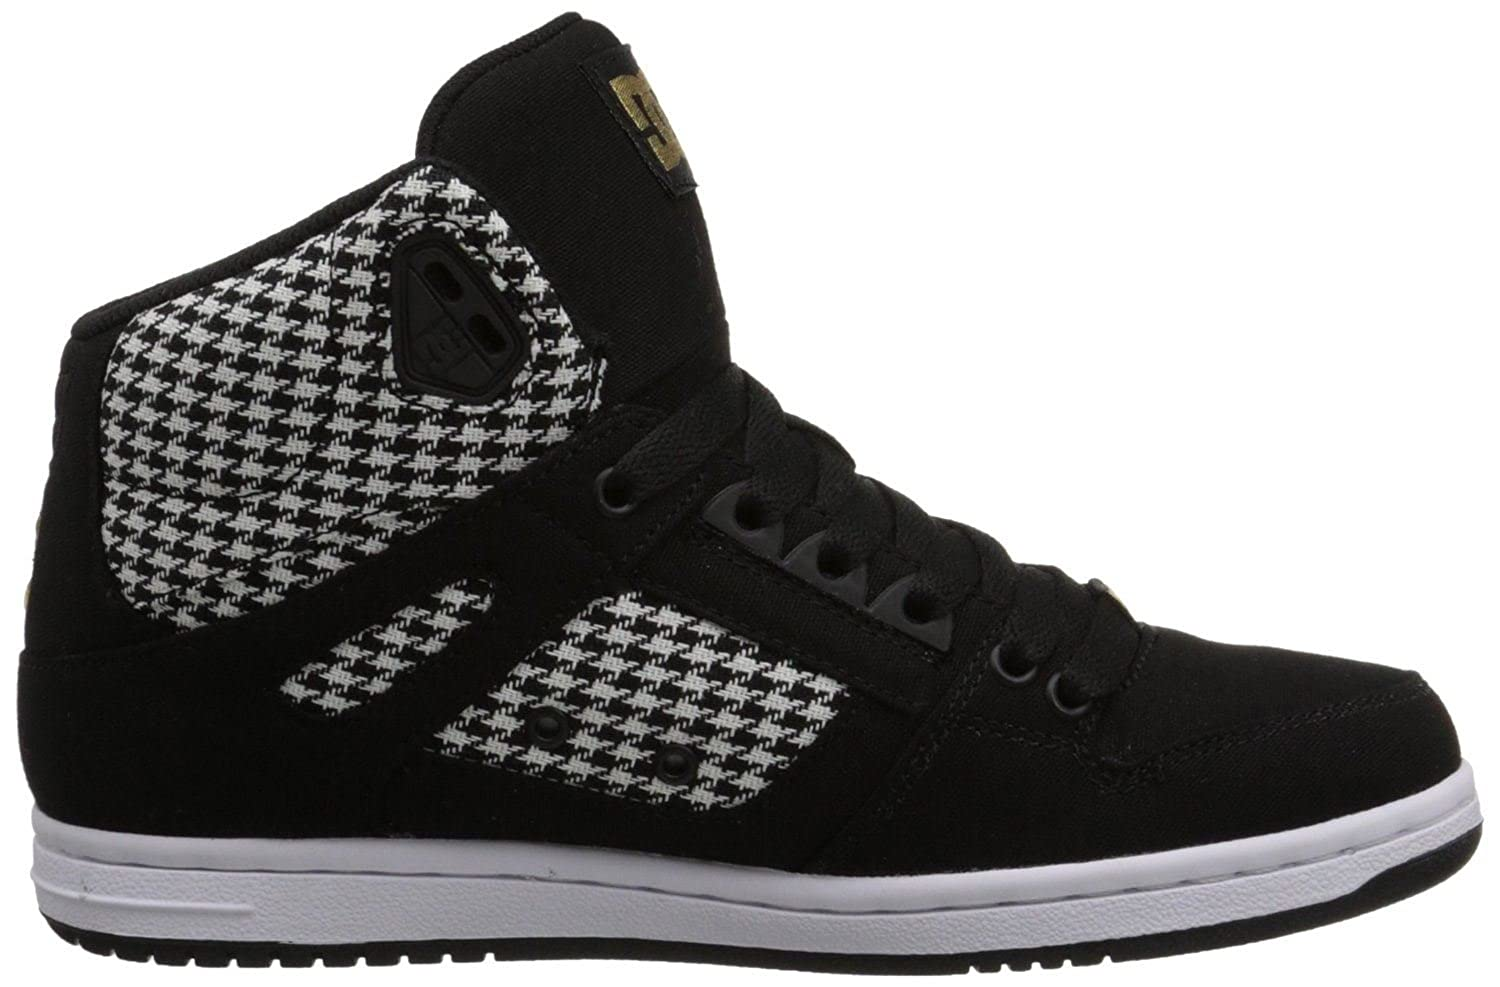 511c4e65467a60 DC Rebound Hi Black White Gold Canvas Womens Skate Trainers Shoes Boots-4   Amazon.co.uk  Shoes   Bags